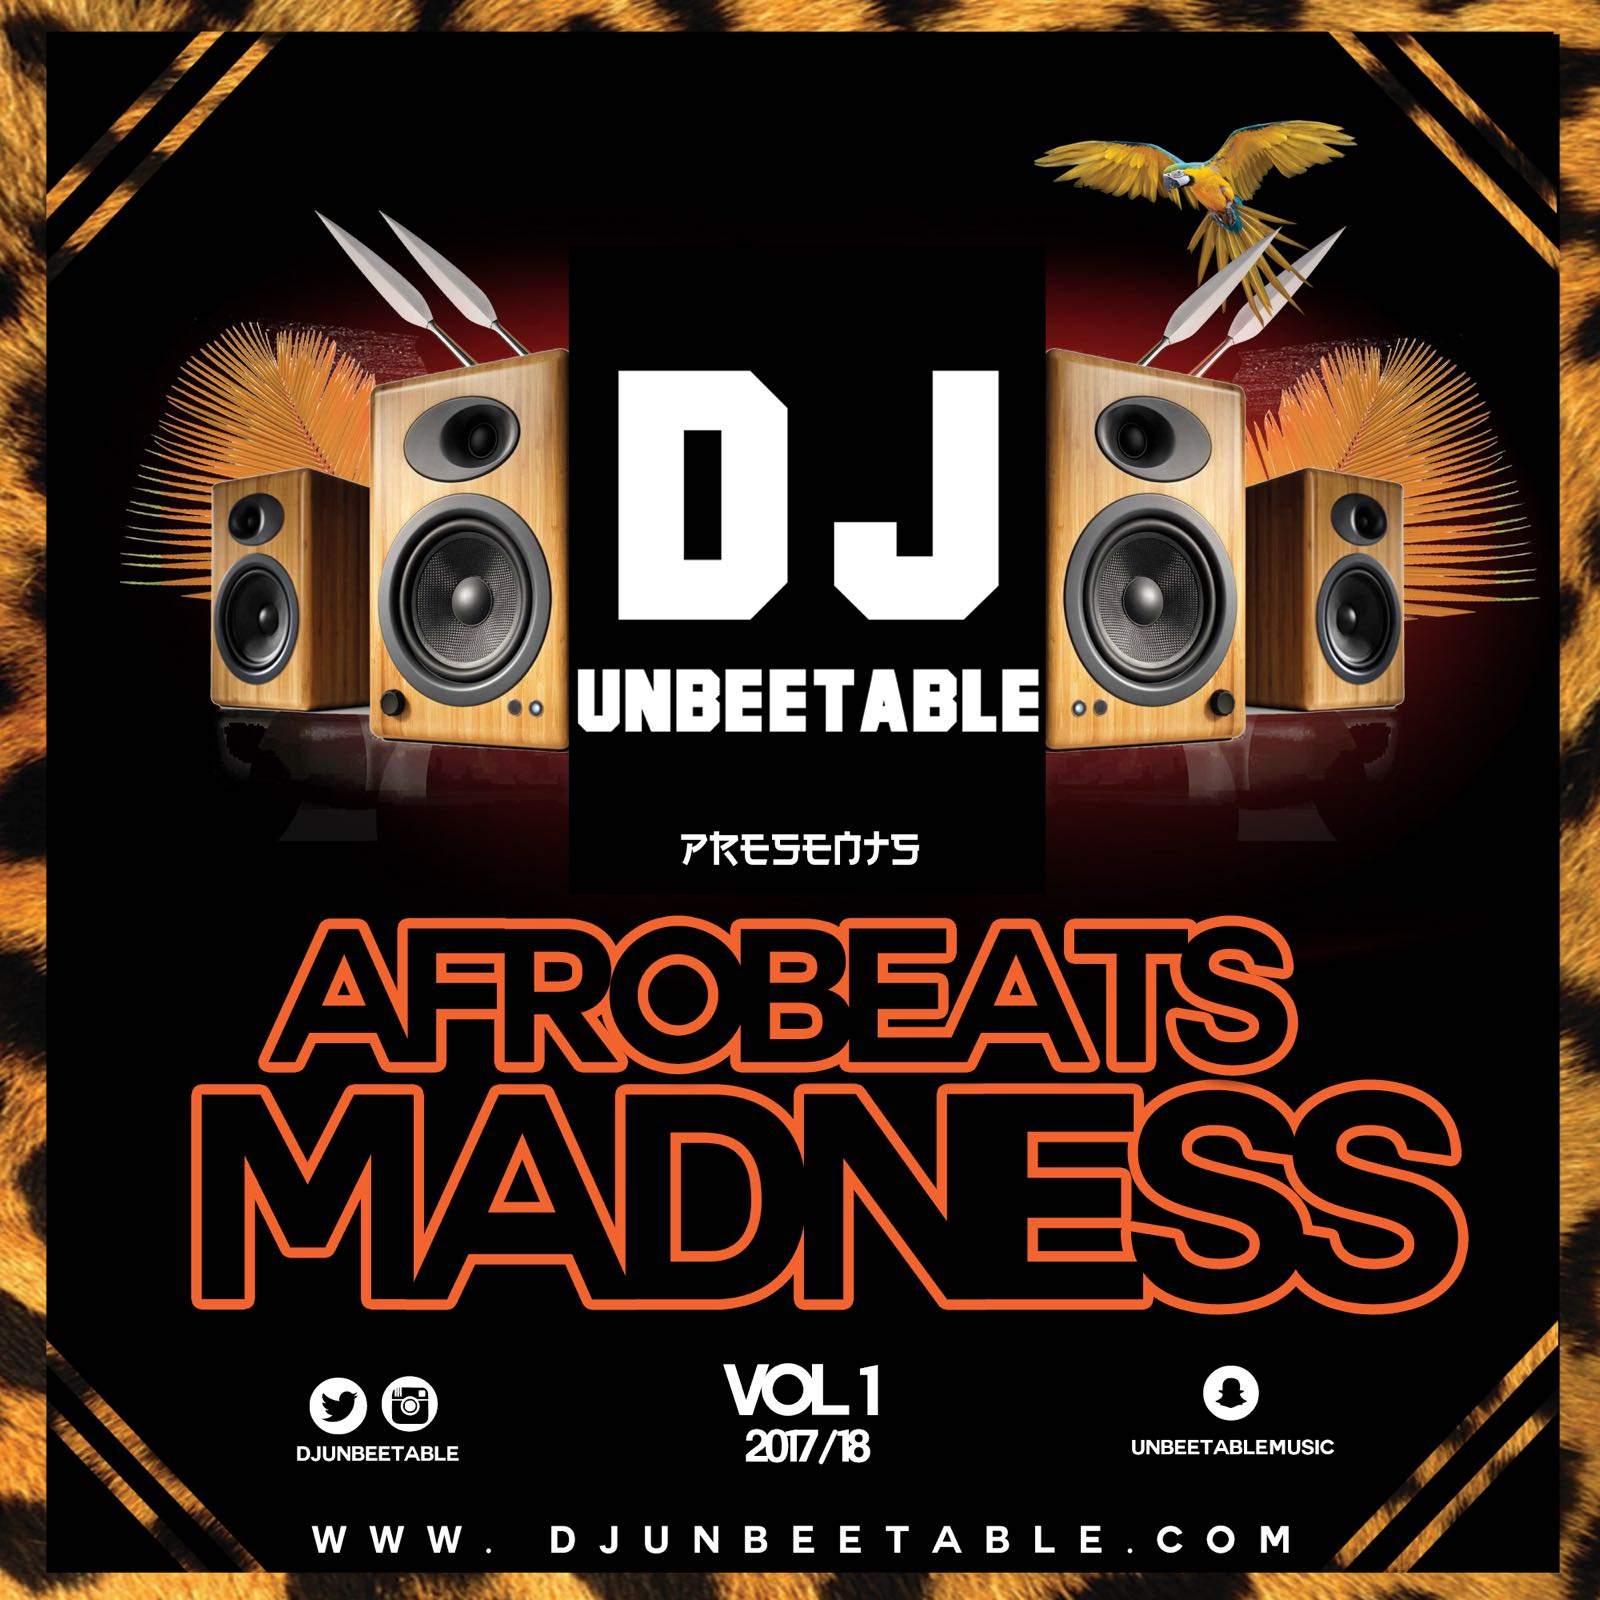 DJ_UNBEETABLE Afrobeat madness vol 1